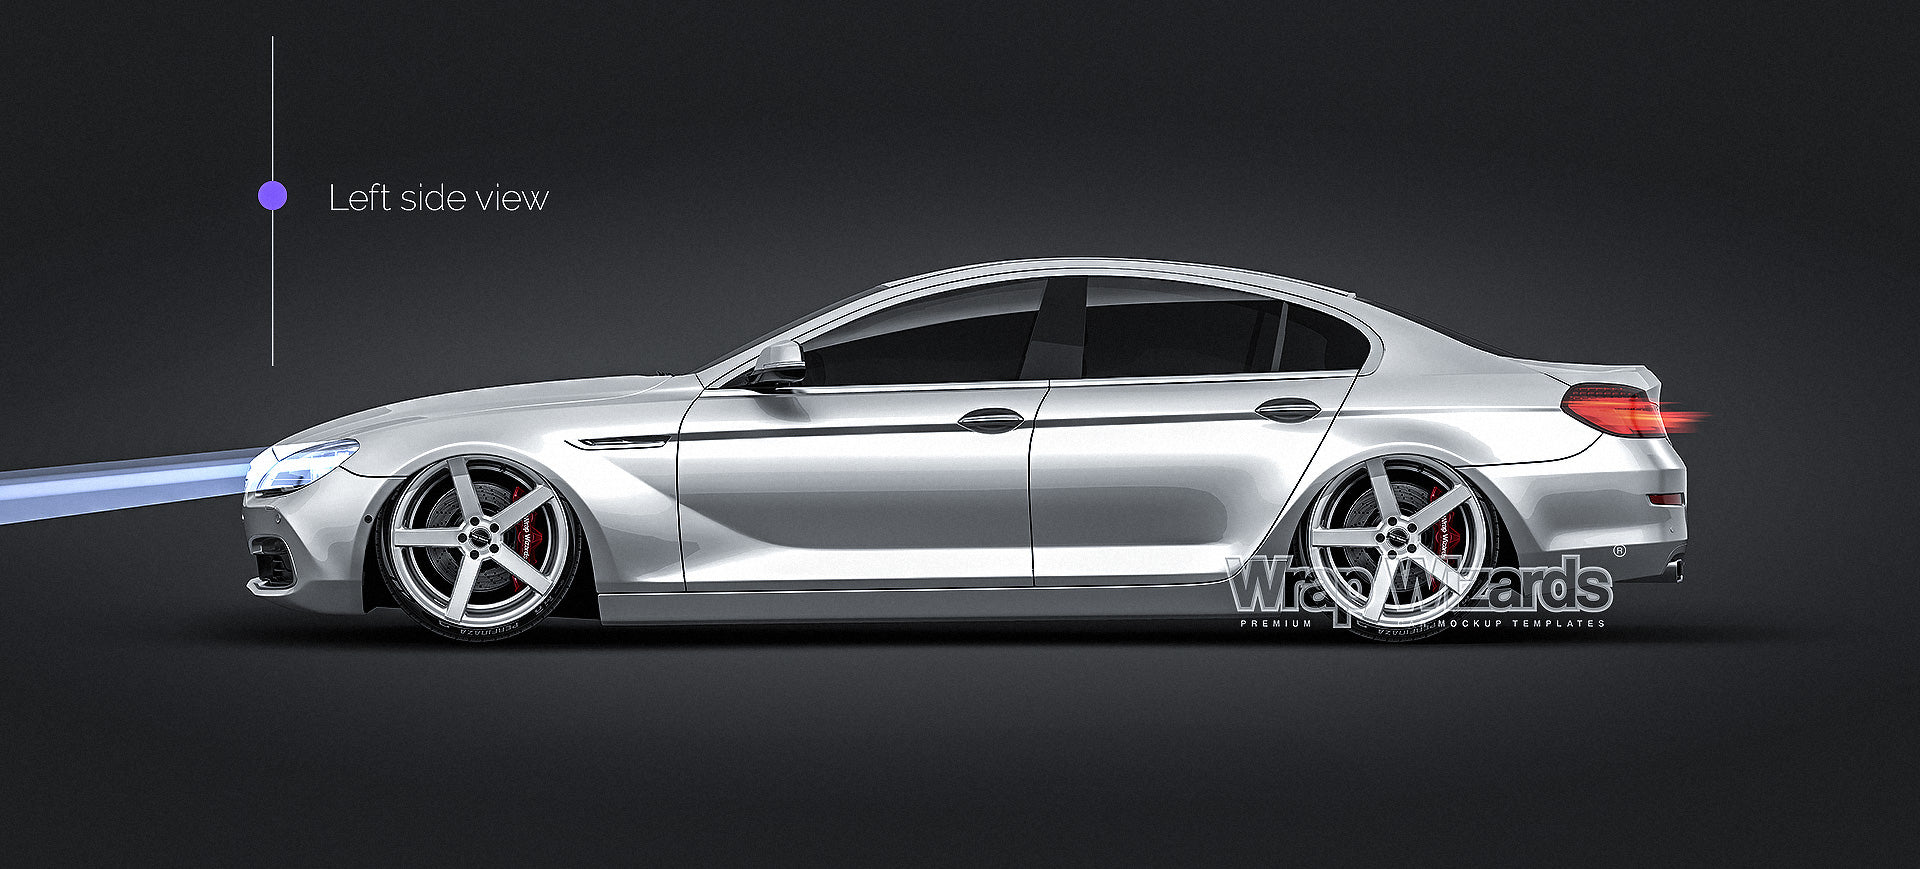 BMW 6-Series Gran Coupe 2015- all sides Car Mockup Template.psd